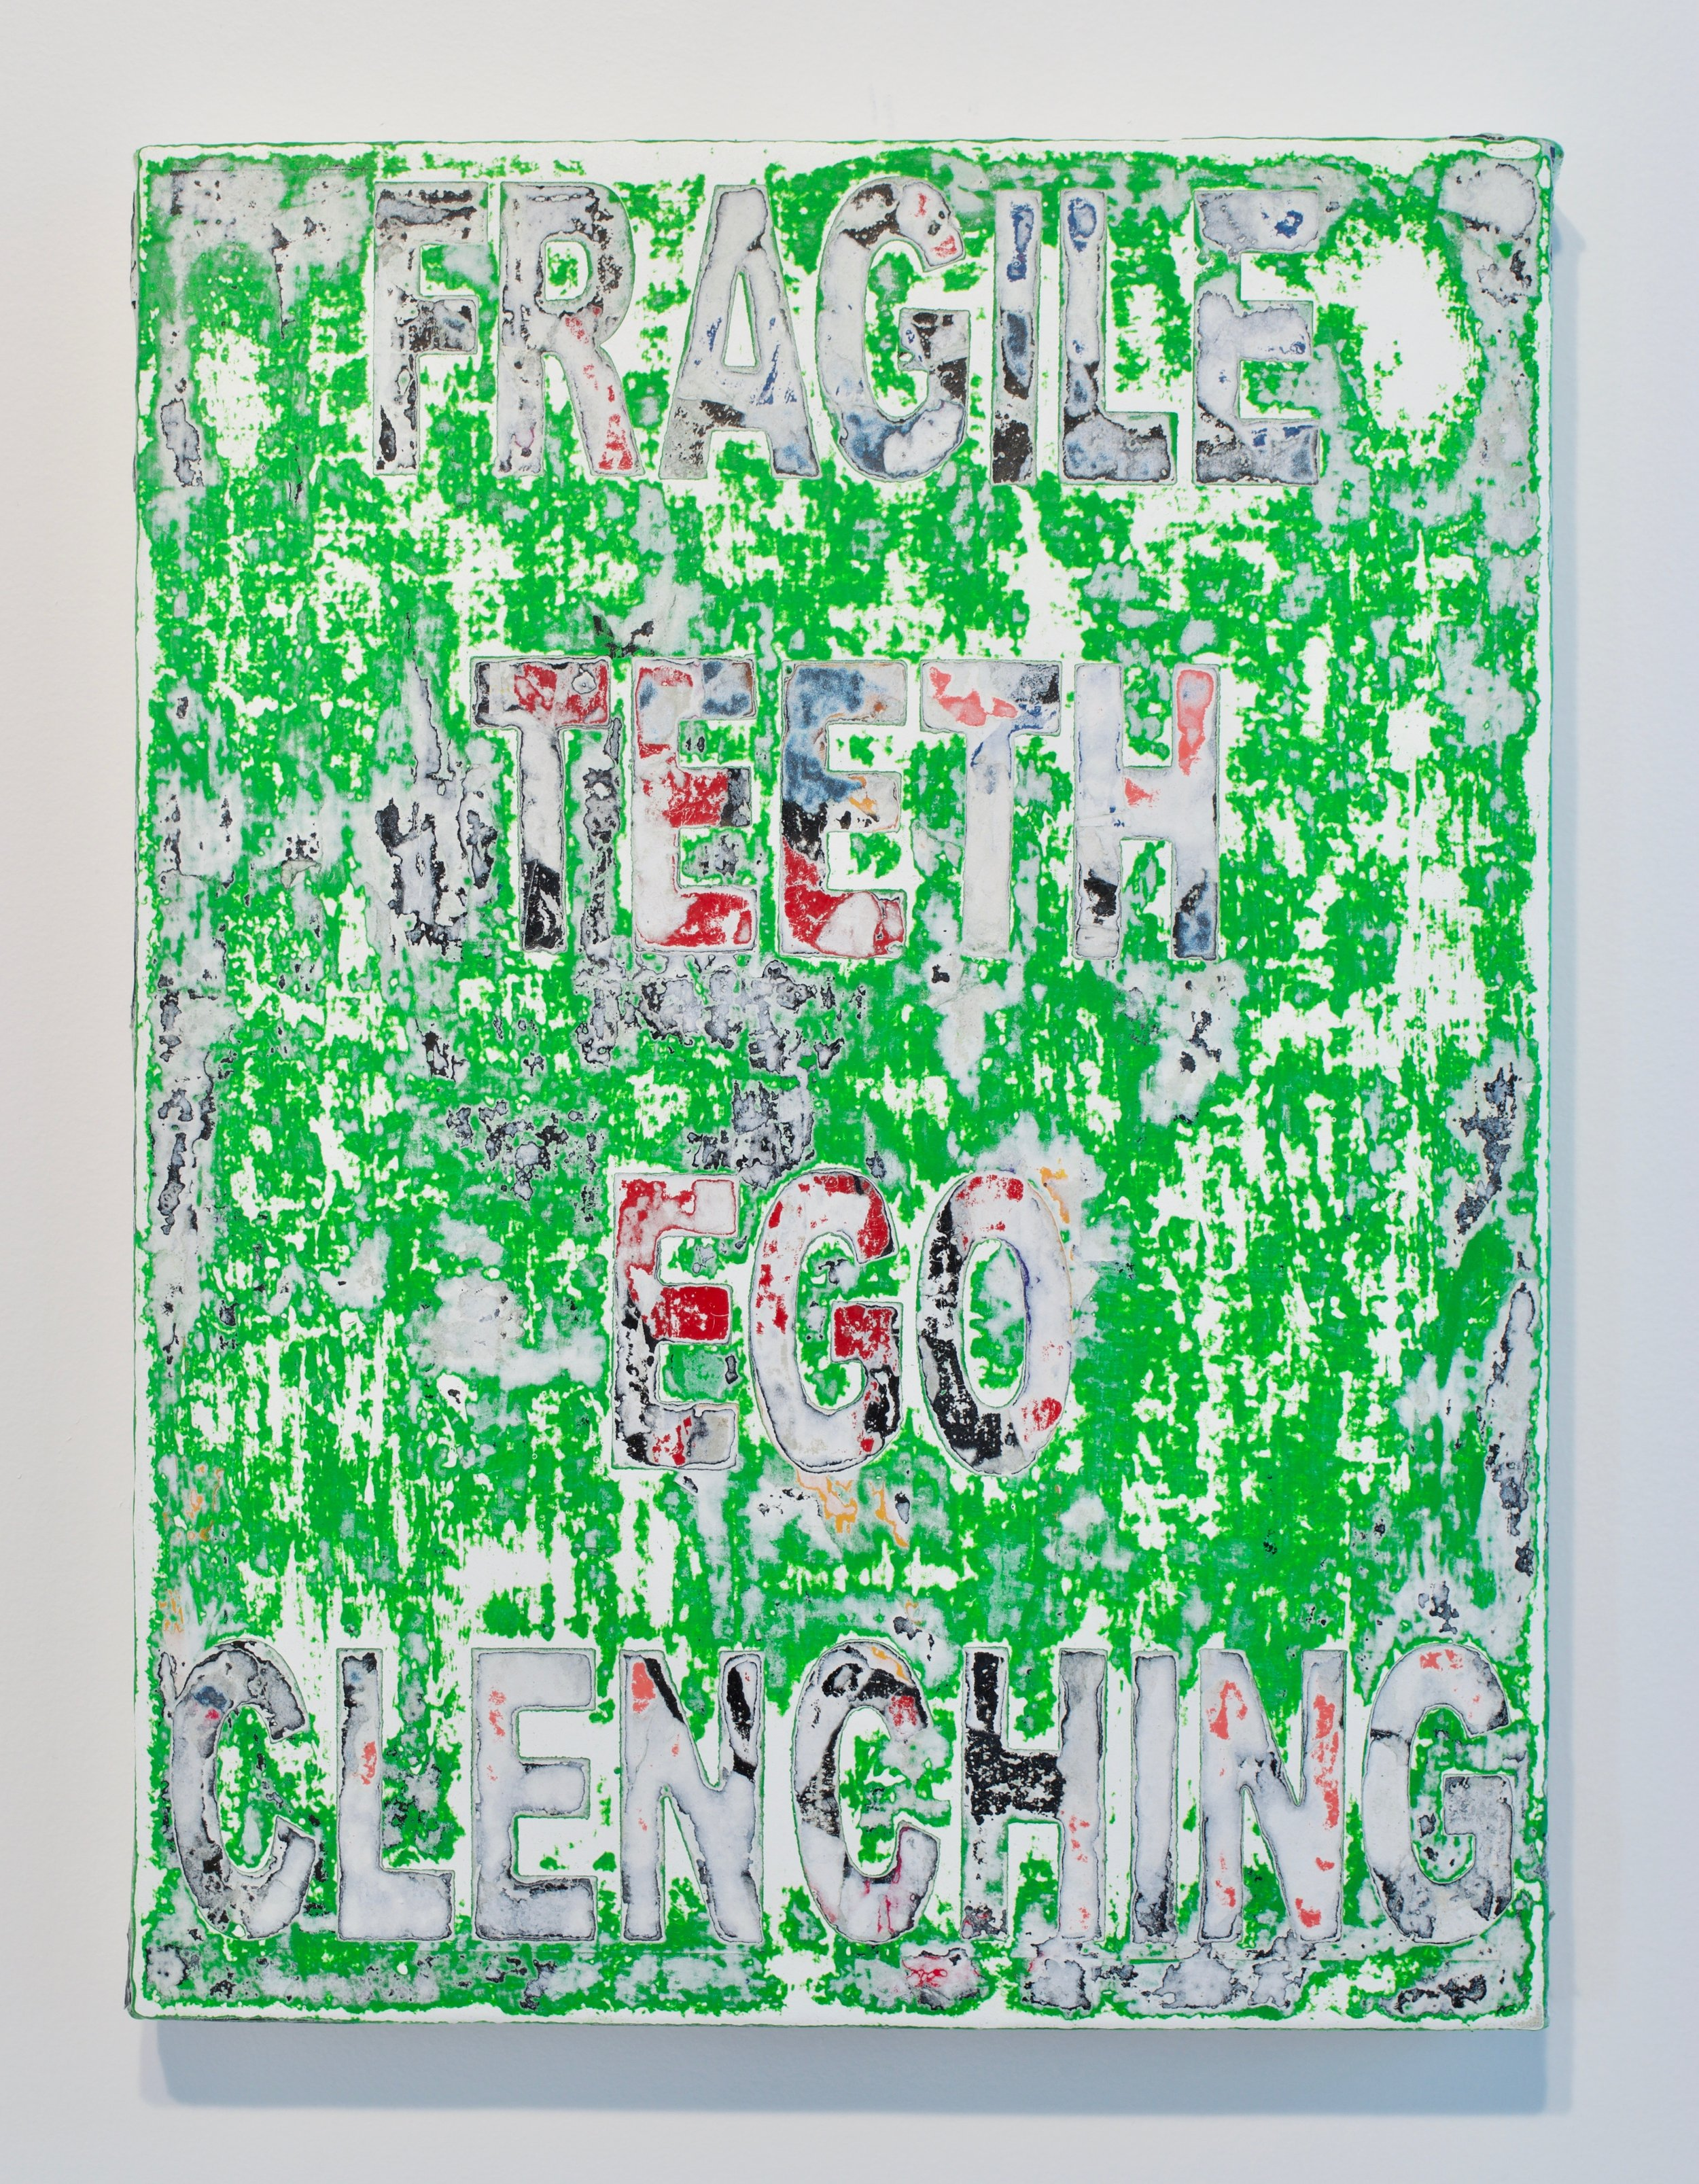 """Andrew Laumann, """"Symptoms (Fragile Ego, Teeth Clenching)"""", 2017. Methylcellulose, acrylic, paper on canvas mounted on wood panel, 16x12 in."""